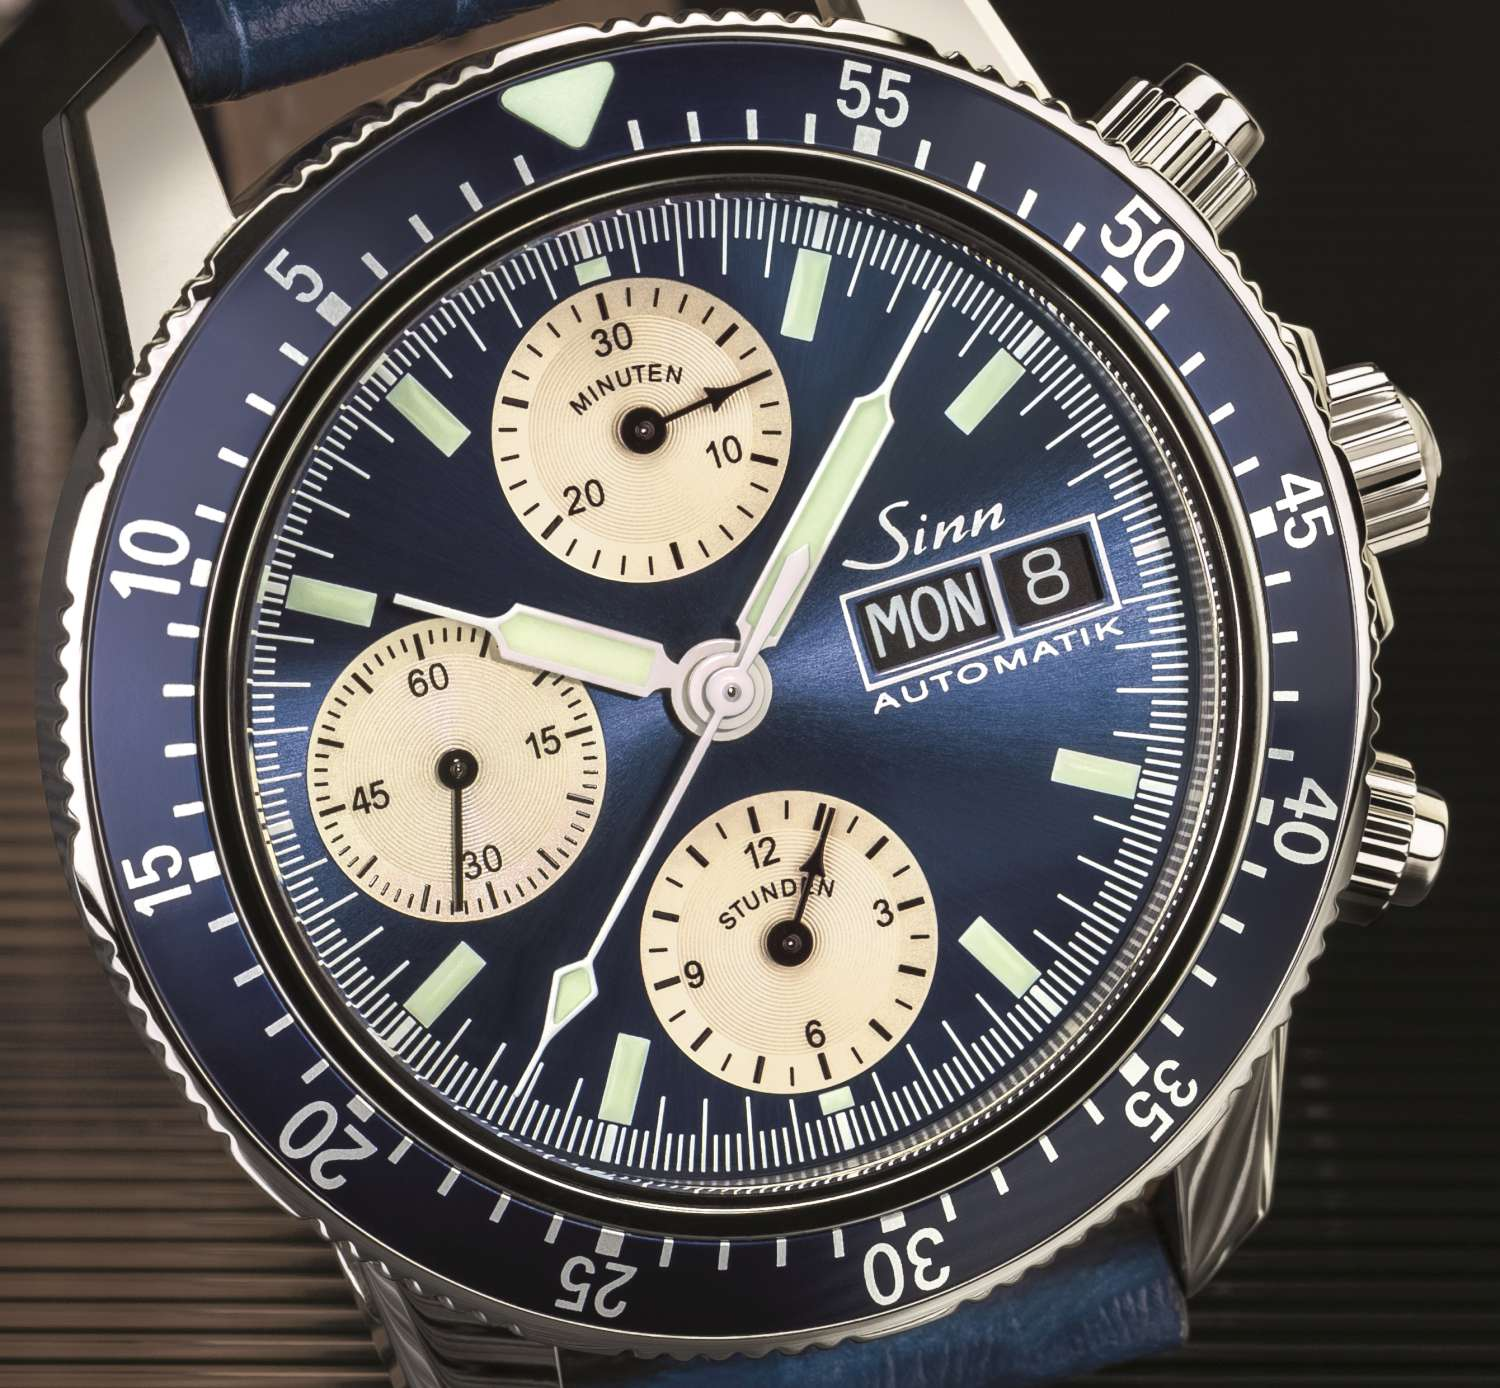 low_SINN_103ASaB_dial_detail-1500